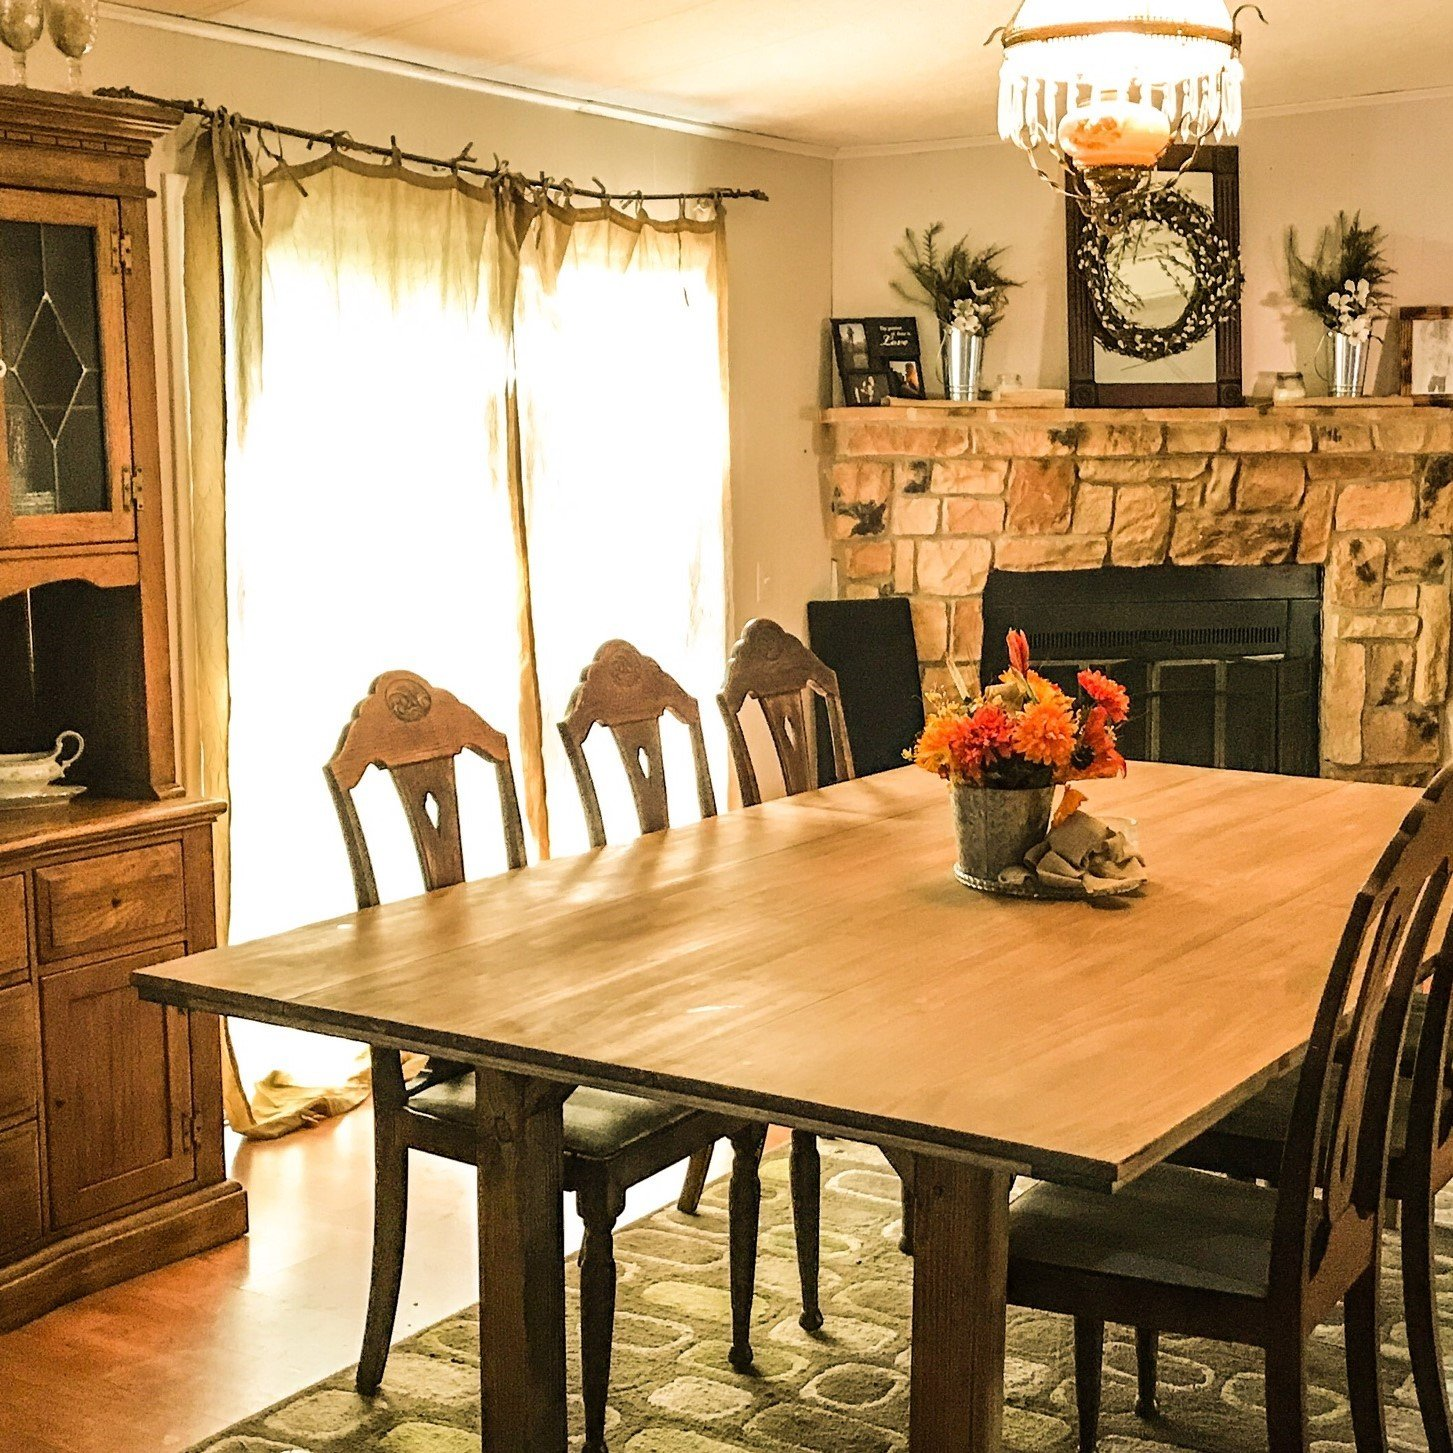 Making Your Mobile Home Feel Like Home - ustin Mobile Homes on home office decorating ideas, formal dining room design ideas, home study decorating ideas, home entertainment decorating ideas, dining room makeover ideas, living room dining room combo design ideas, round table in dining room ideas, country dining room ideas, cozy dining room ideas, red color paint living room ideas, dining room color ideas, neutral kitchen design ideas, home theater room design small space, orange and brown dining room ideas, home garden decorating ideas, home studio decorating ideas, home staging dining room, bedroom decorating ideas, elegant dining room ideas,